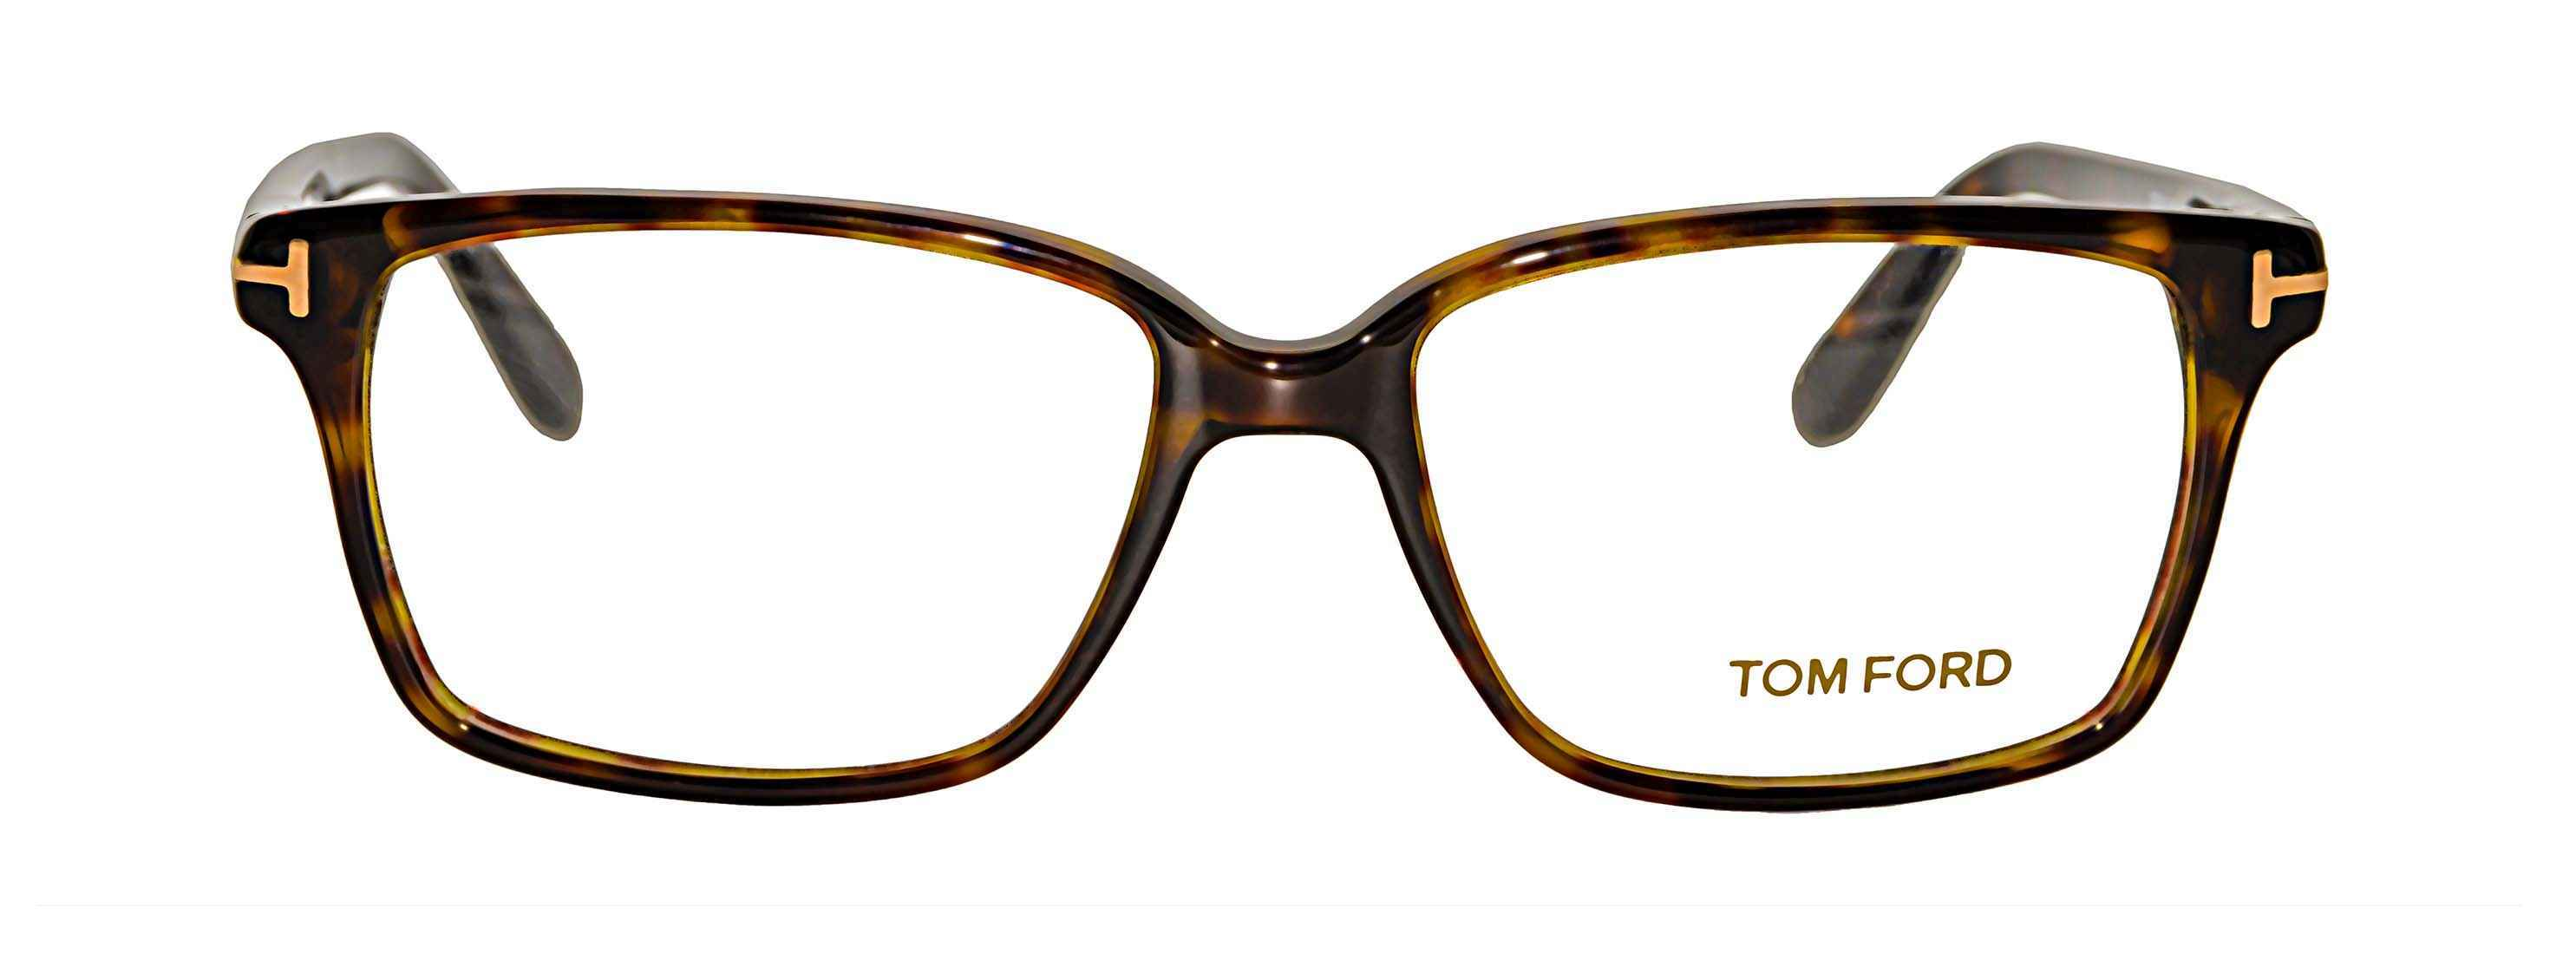 Tom Ford spectacles 5311 52 1 2970x1100